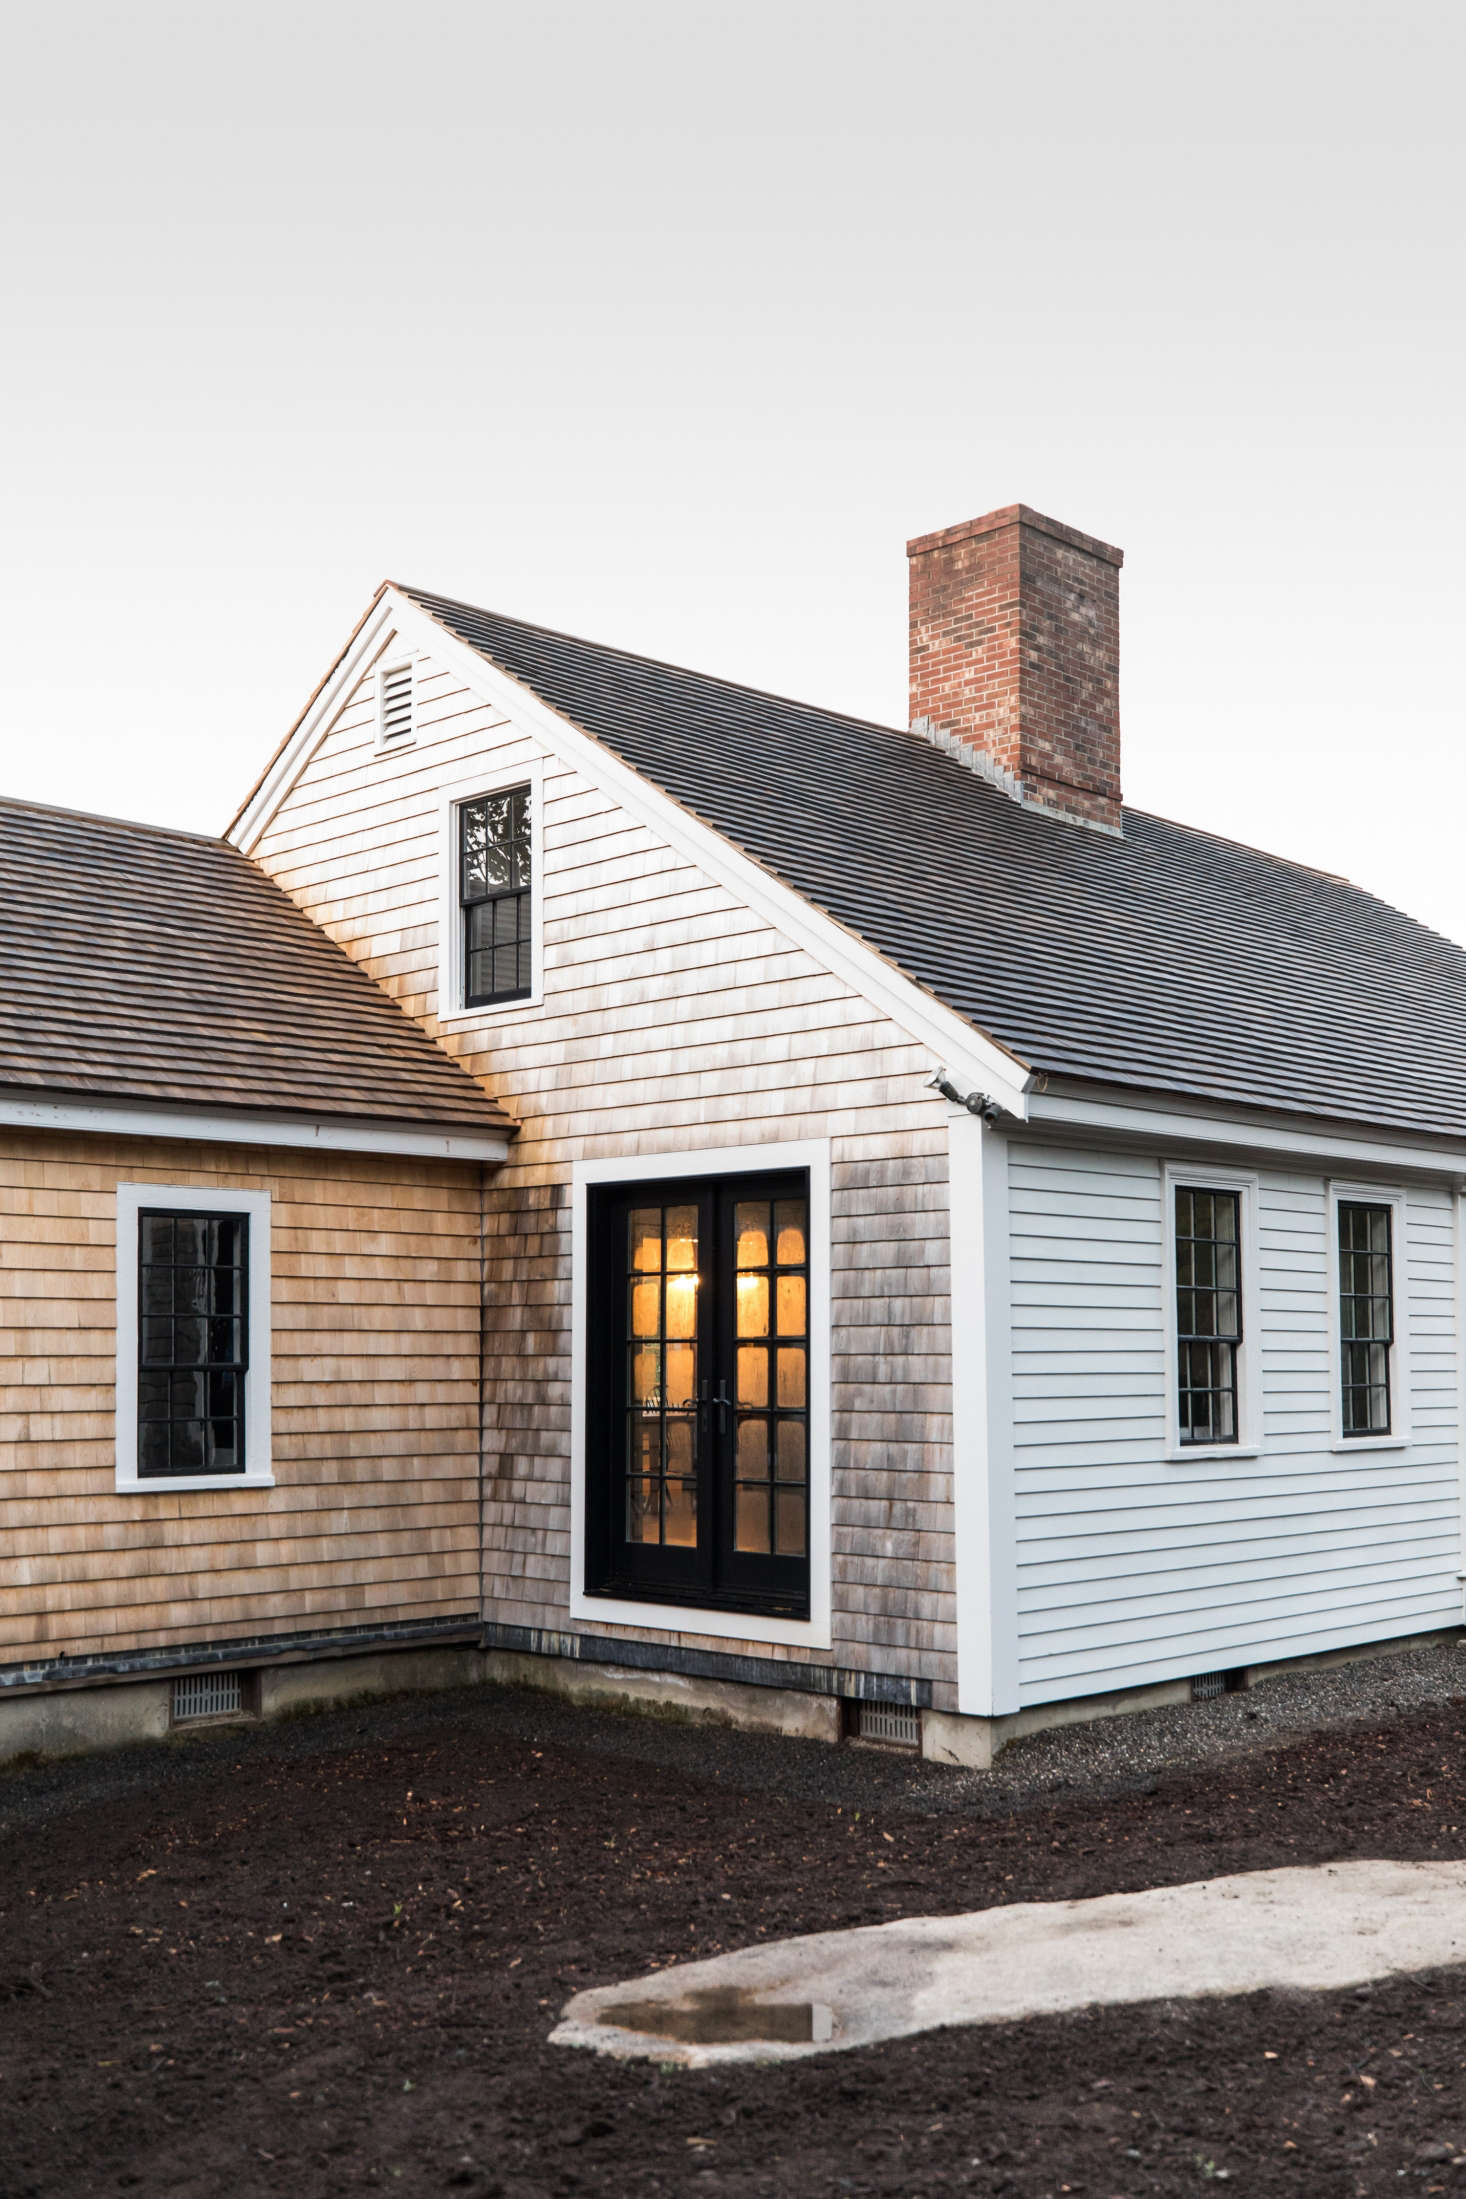 The front of the house is clad in traditional New England clapboards. The sides and small extension on the house are fitted with shingles that will weather. (Esteves is in the process of building a deck in this corner.)